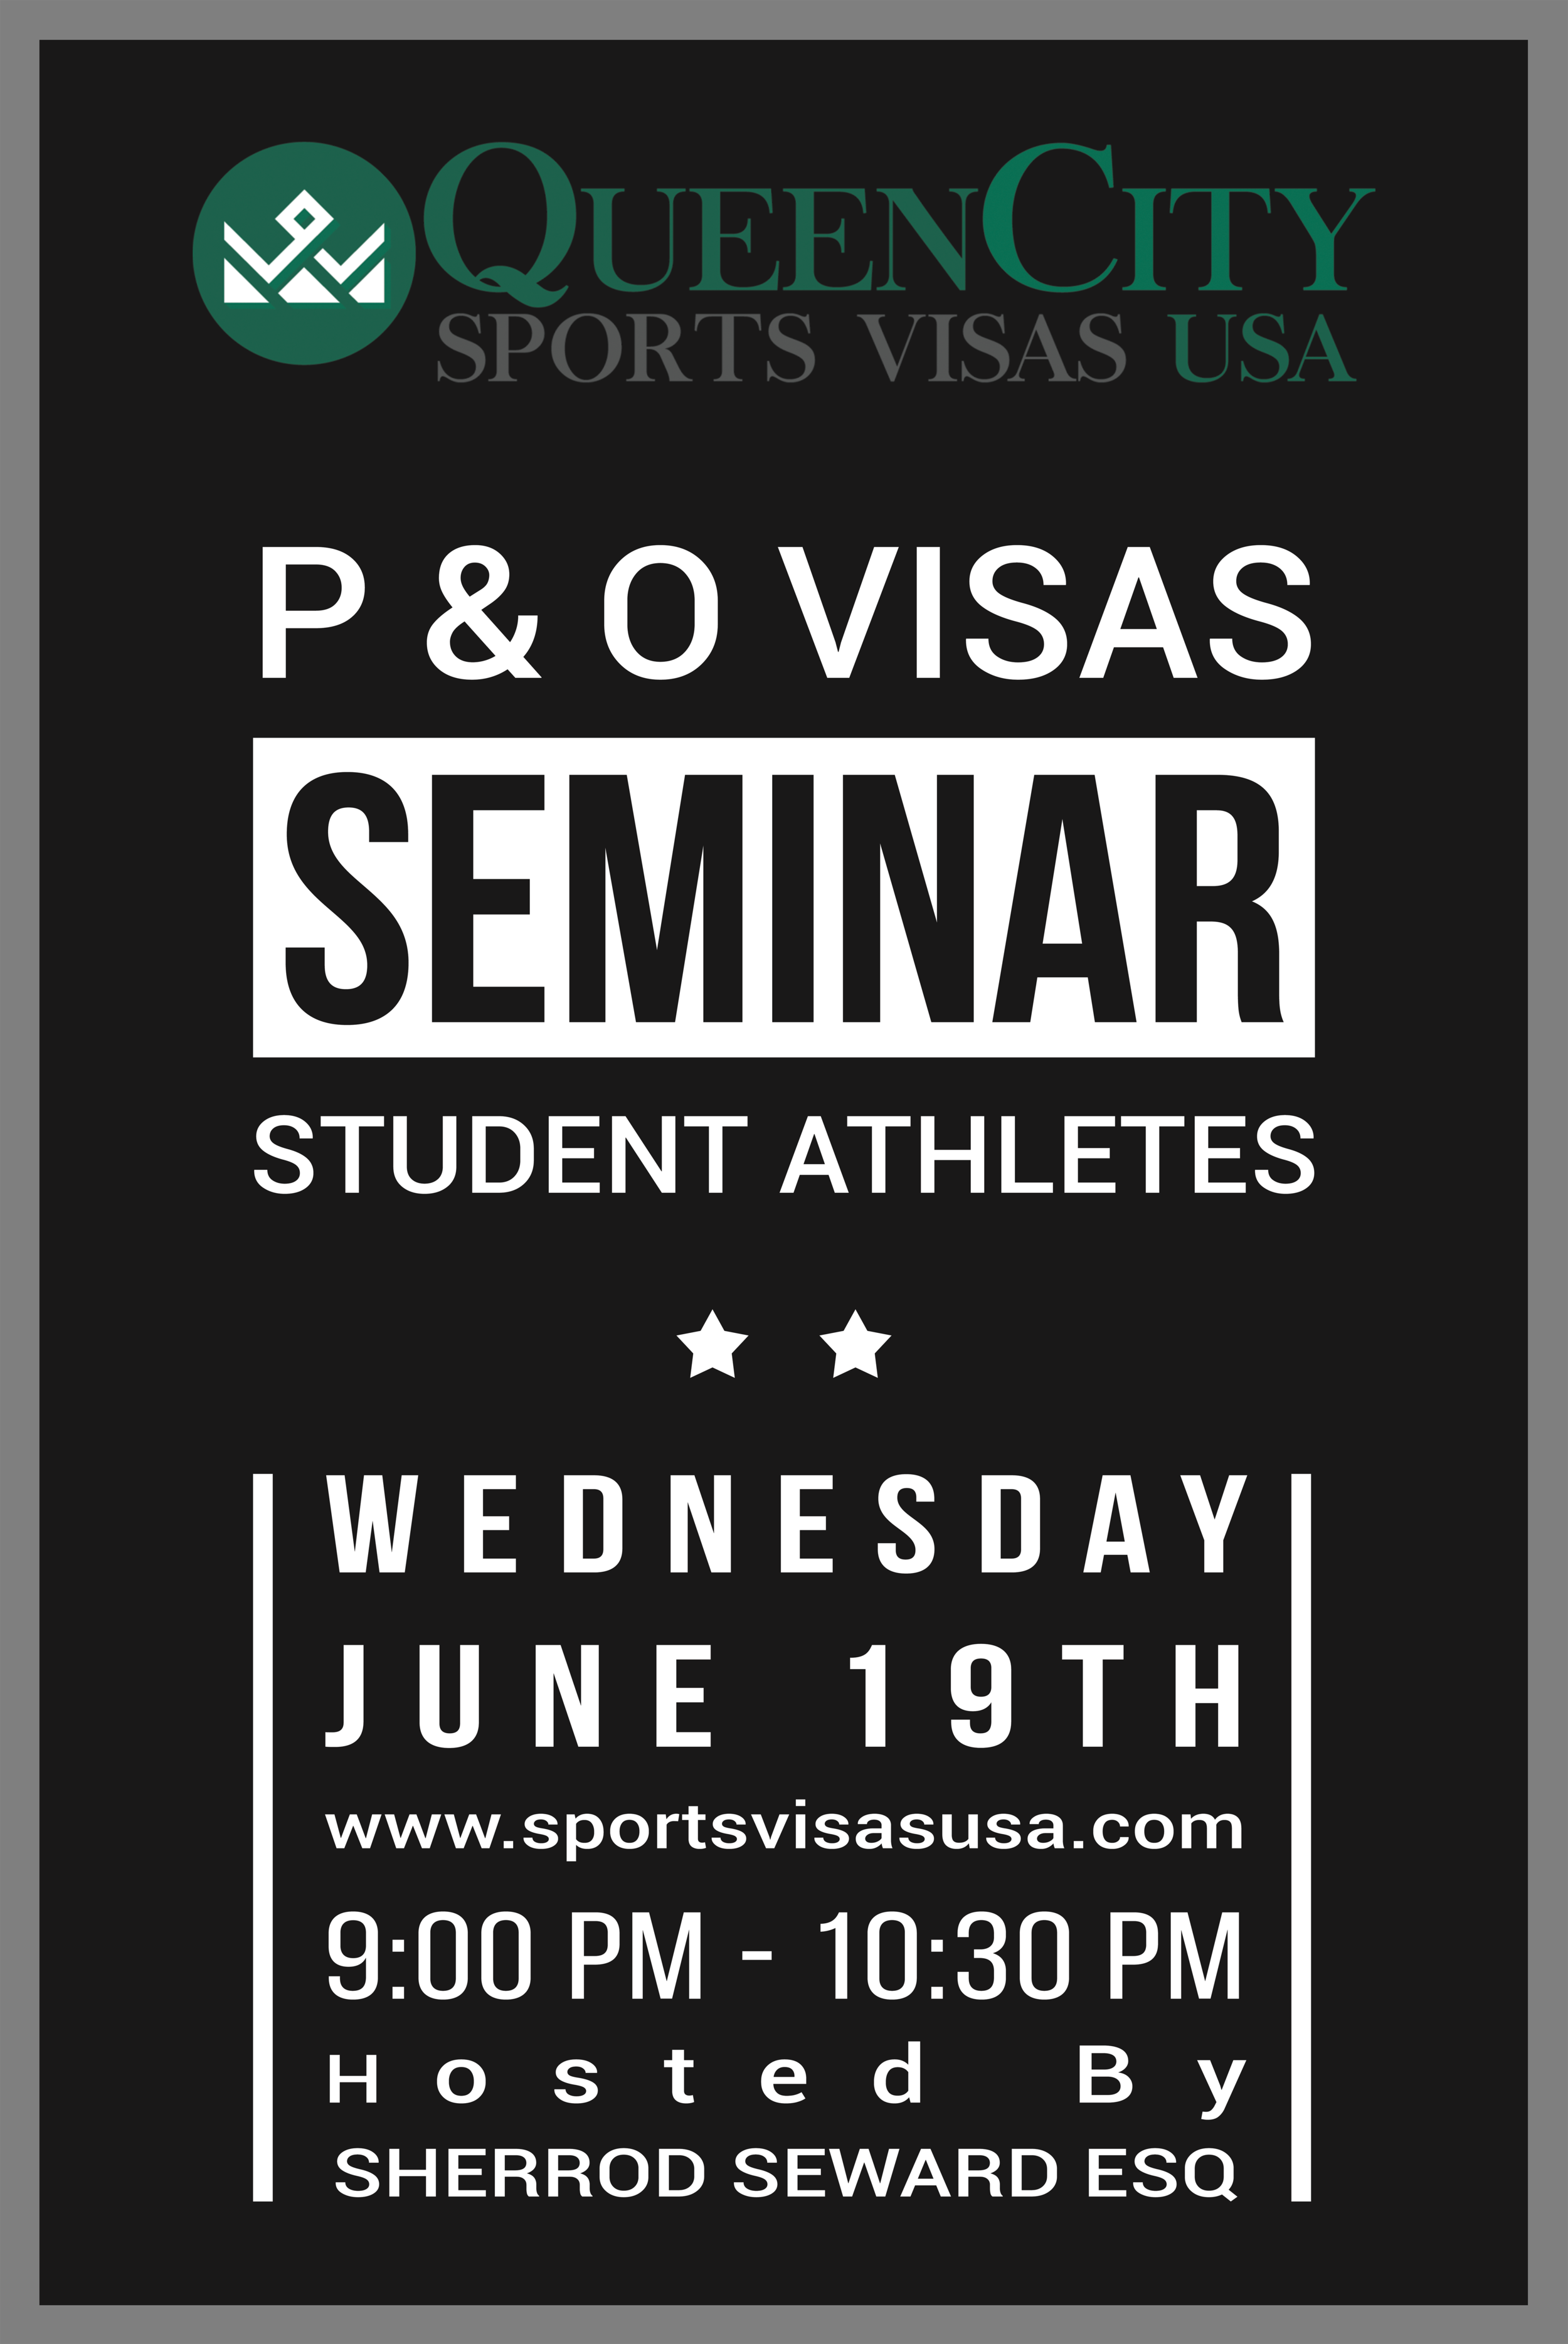 Sports Immigration Seminar - June 19, 201910:00 AM to 10:30 AMONLINE SEMINAR